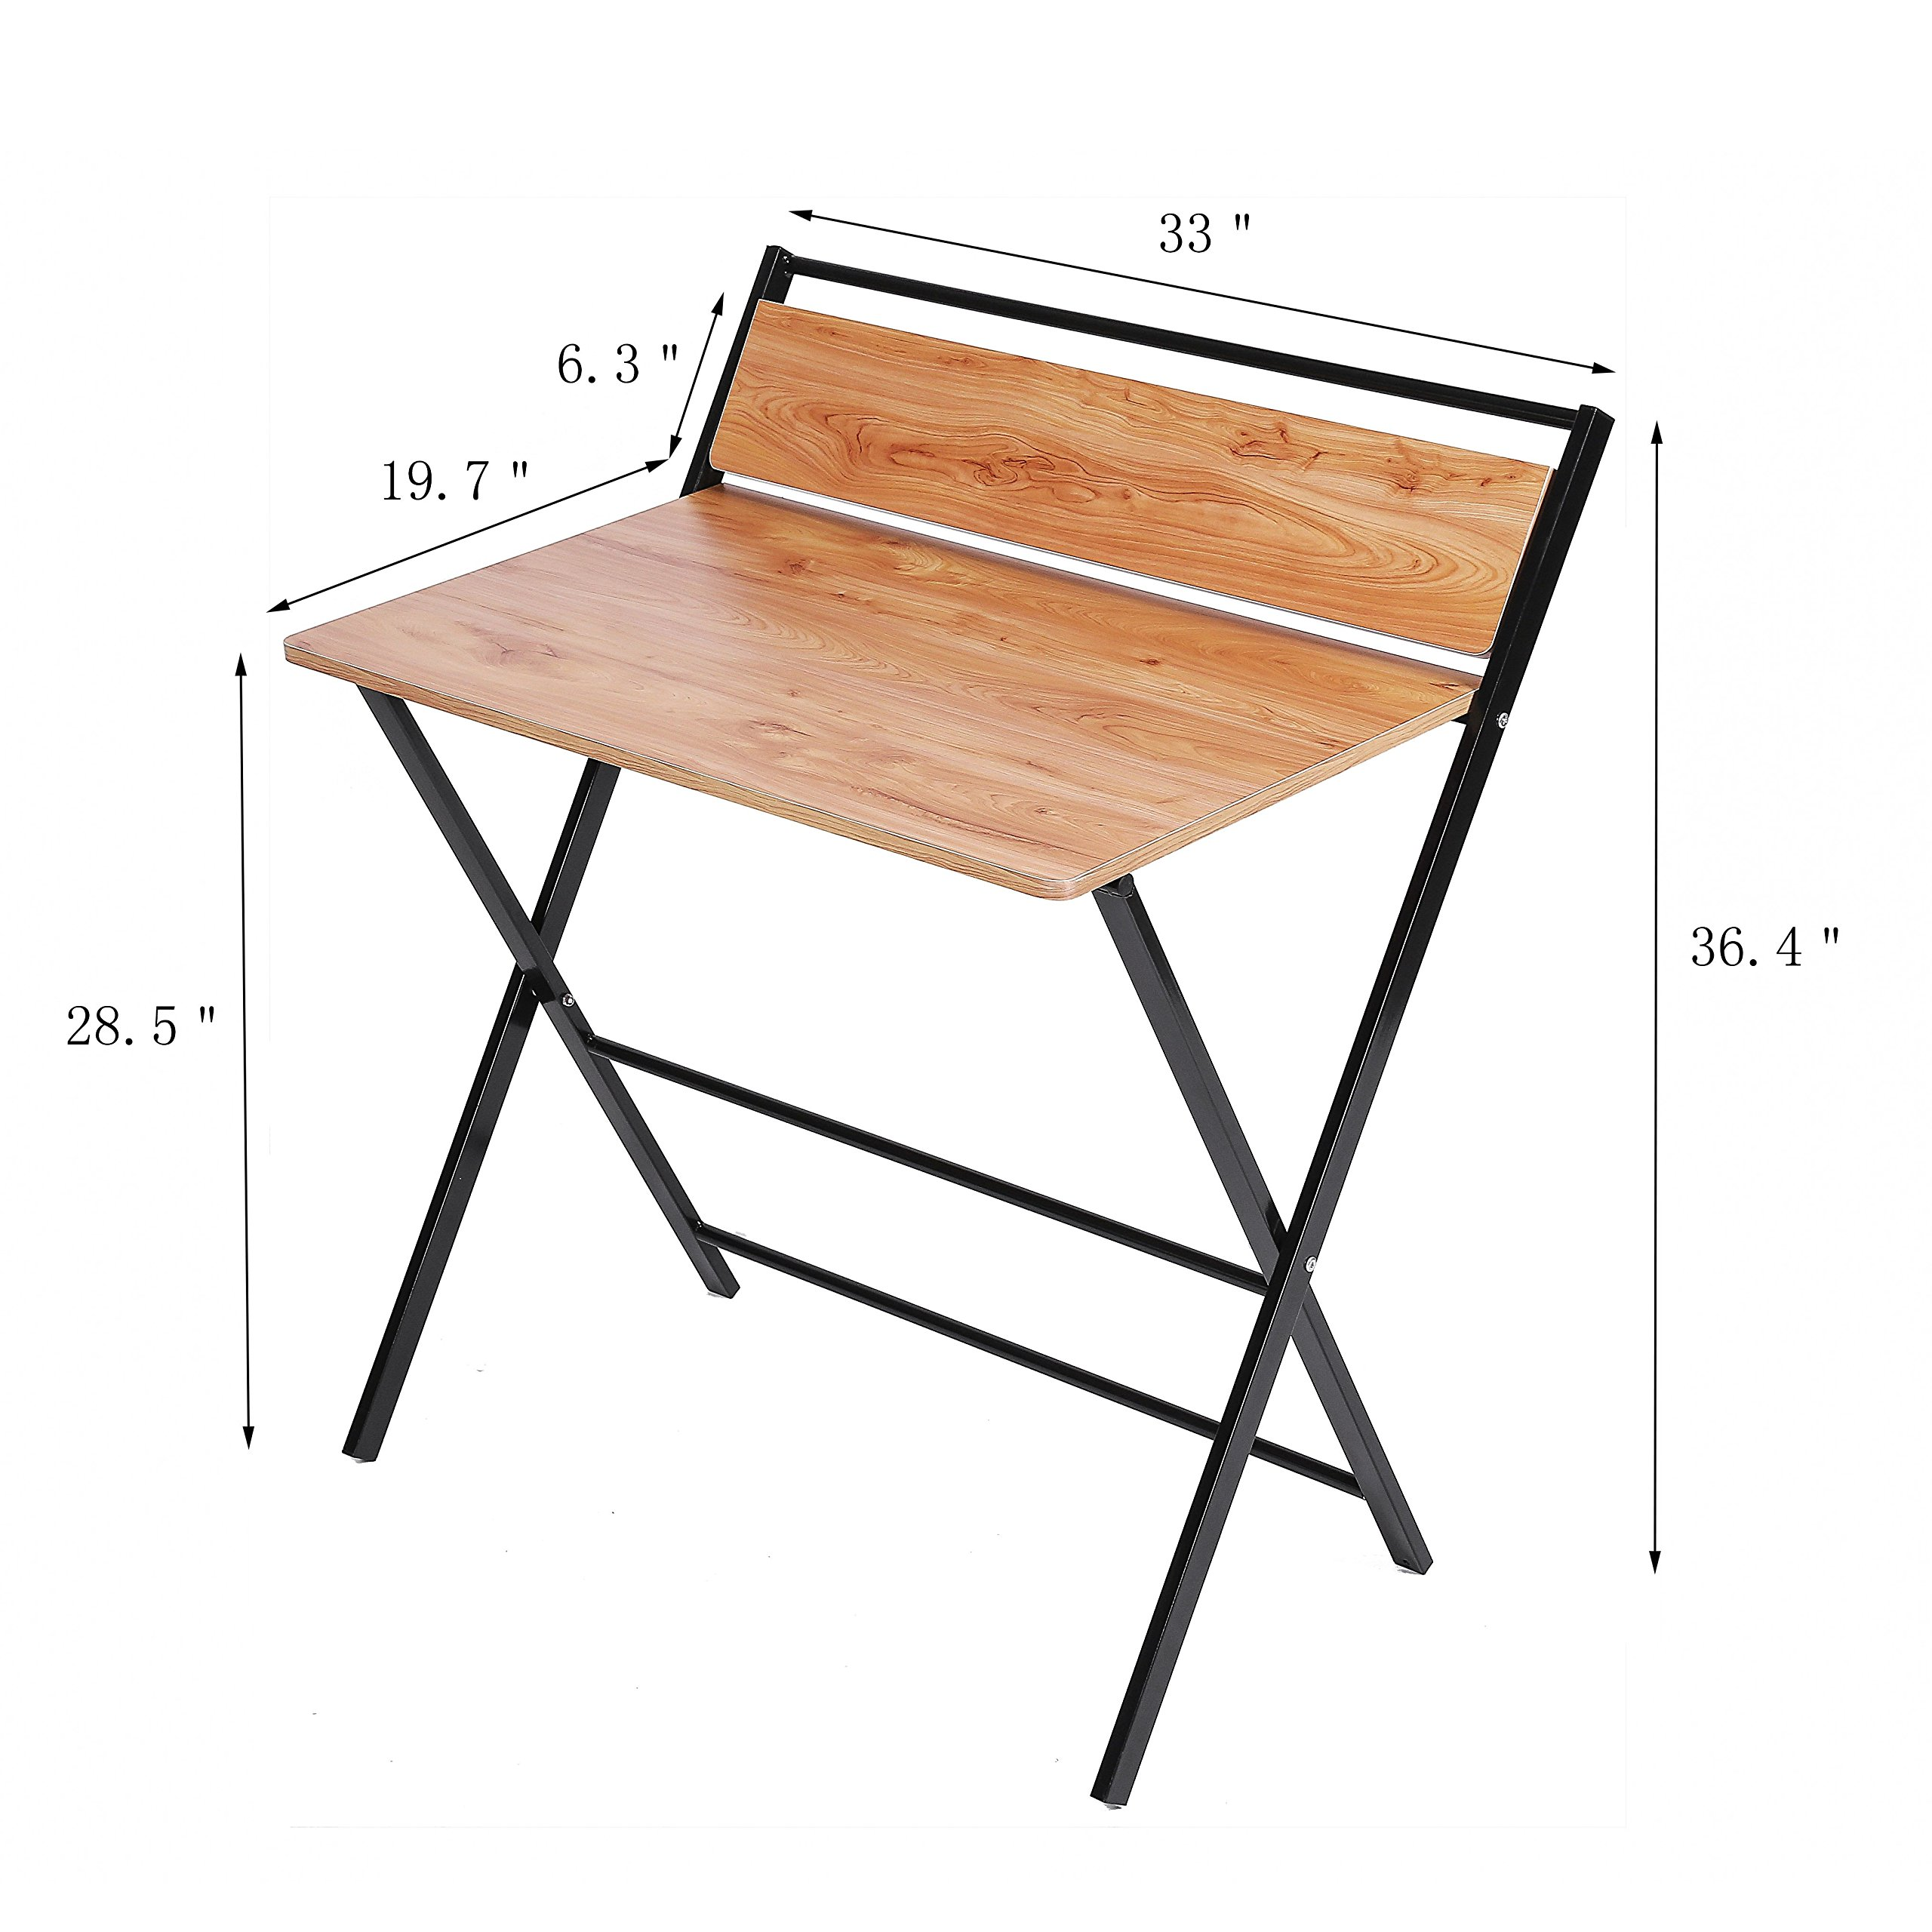 JIWU 2-Style Folding Desk For Small Space, Home Corner